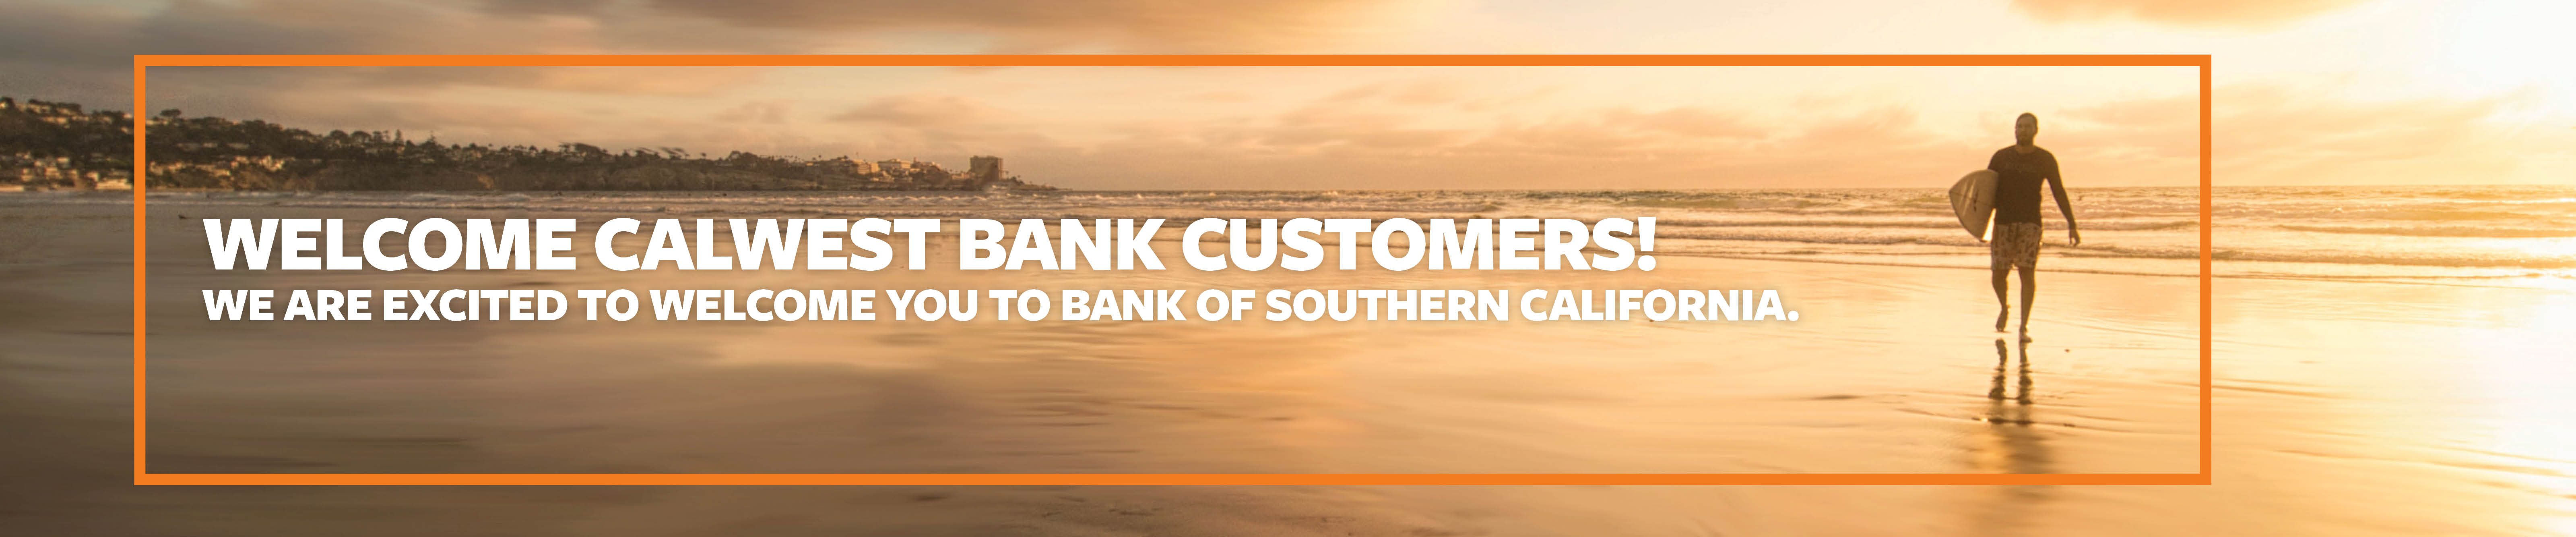 Welcome to Bank of Southern California